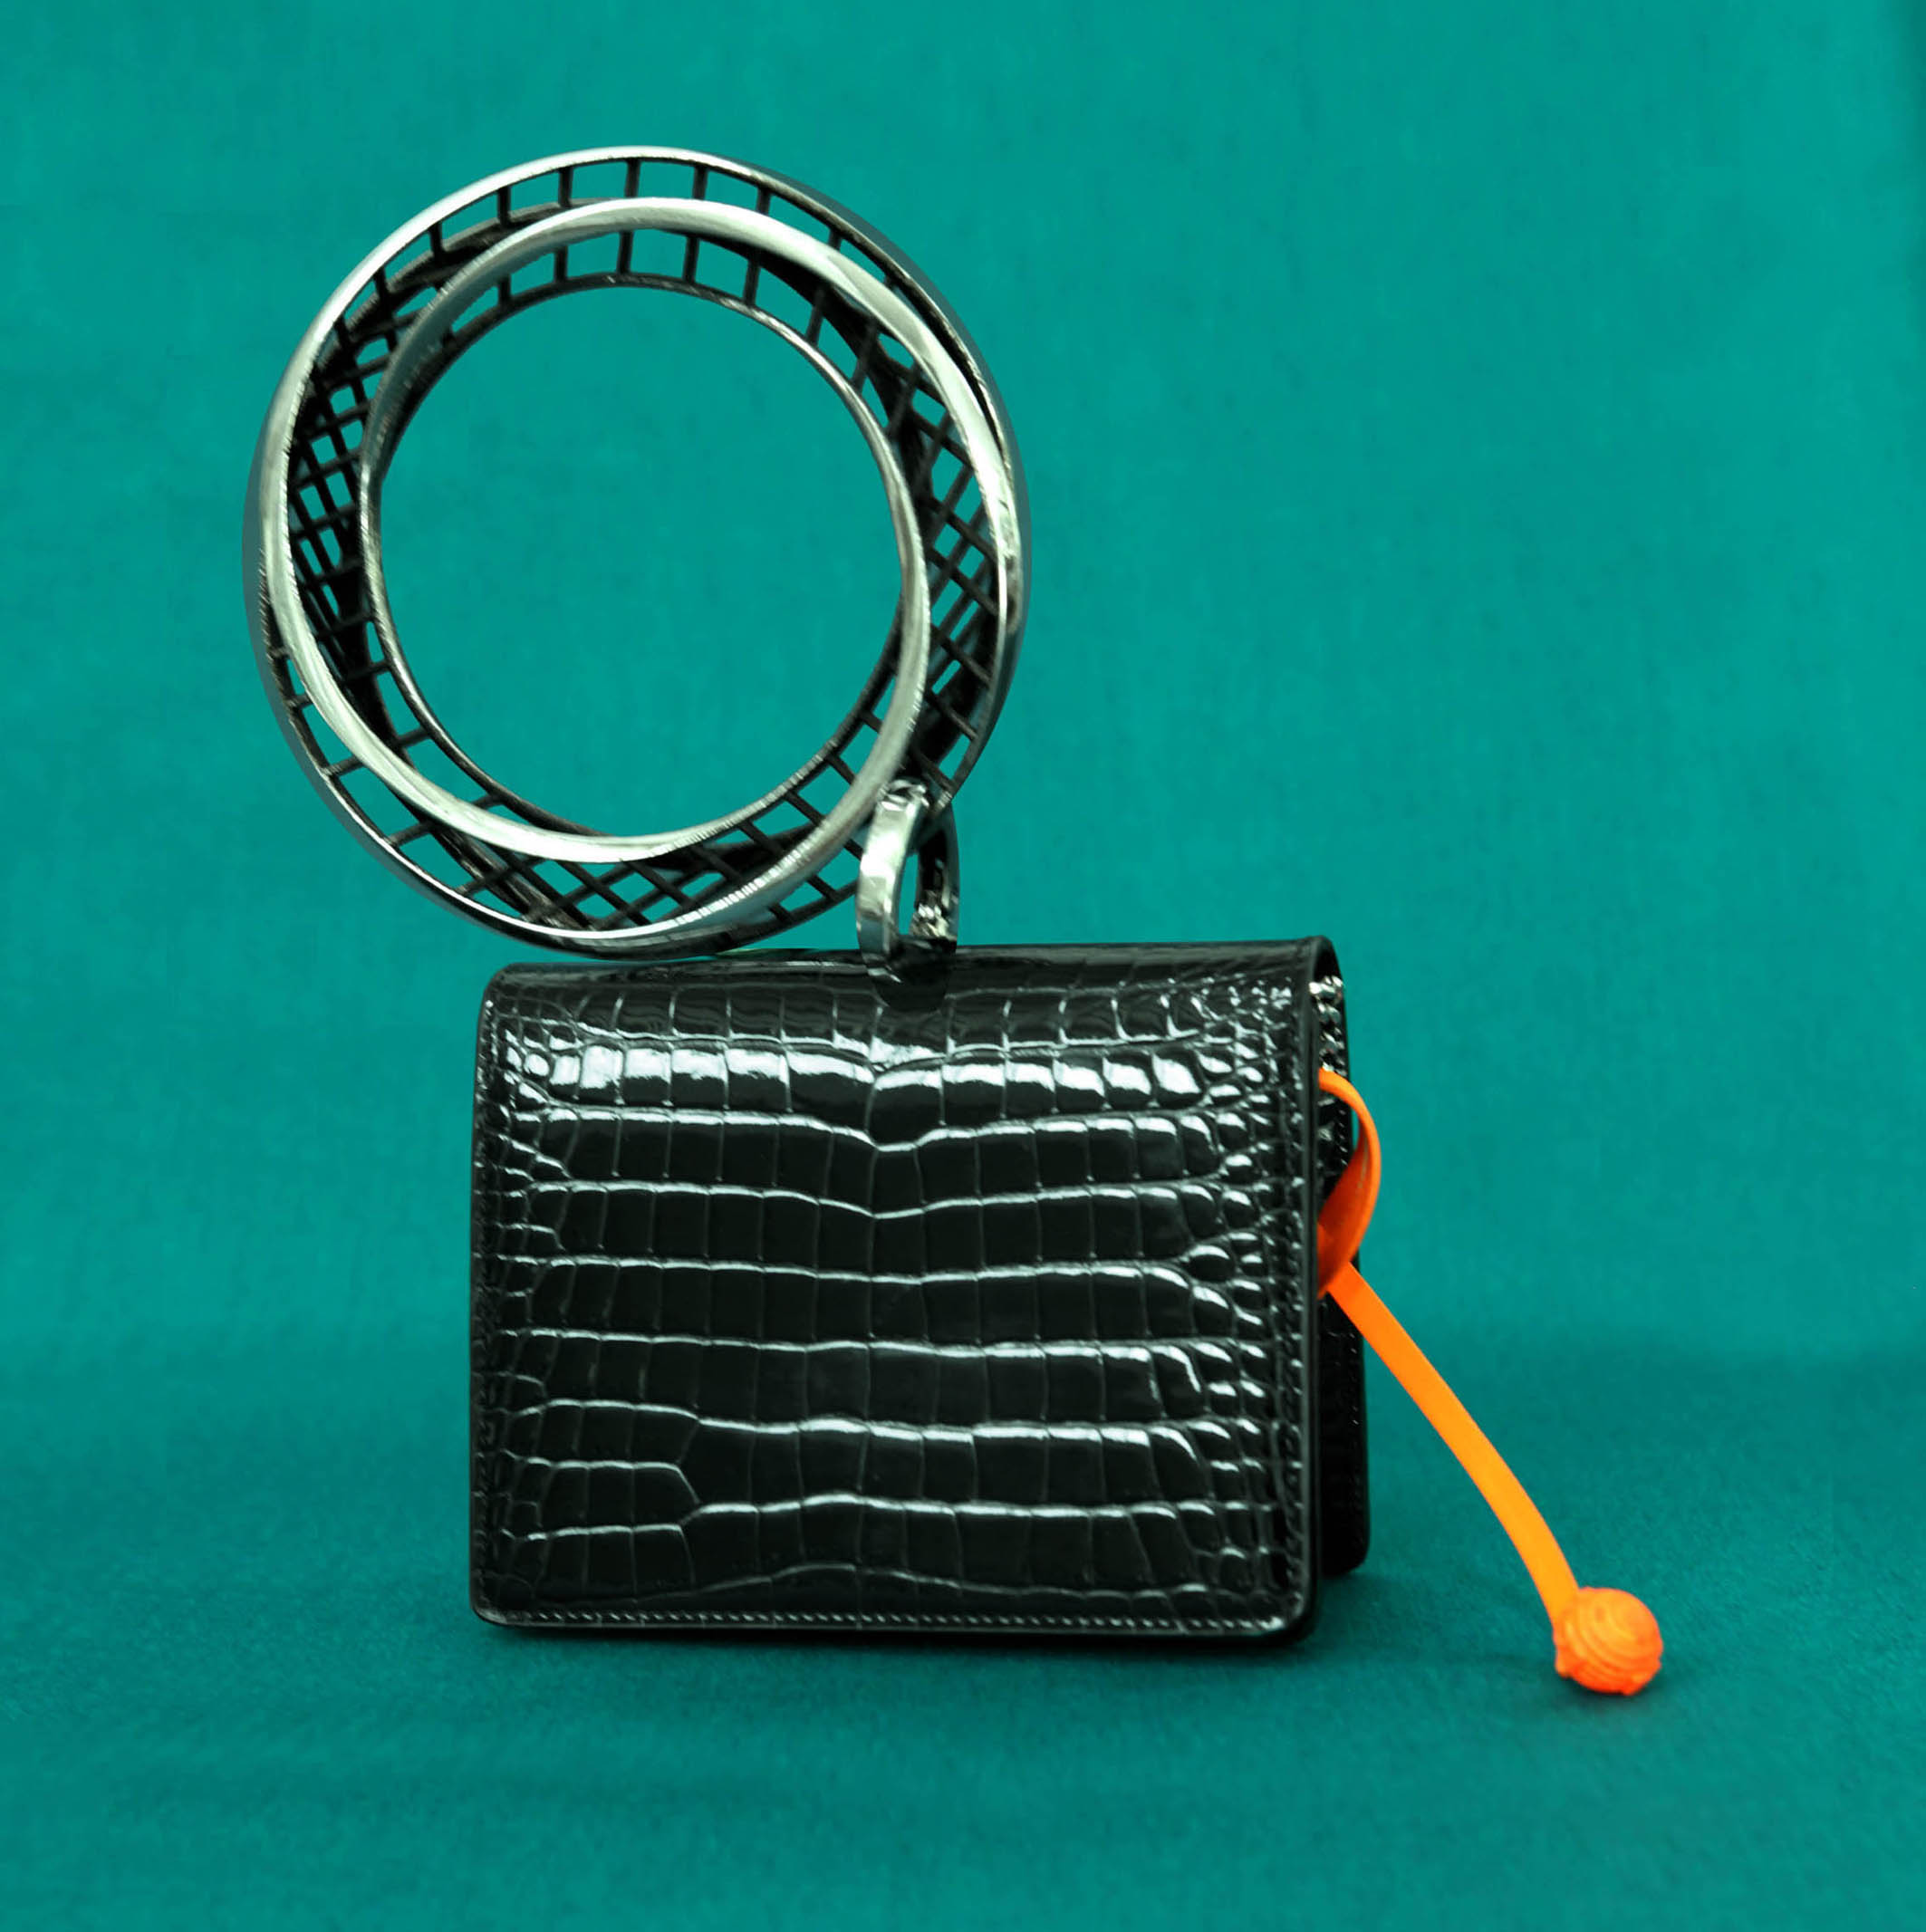 Belt Bags 01 - Maissa by Giulia Ber Tacchini Italian Custom Jewels and Luxury